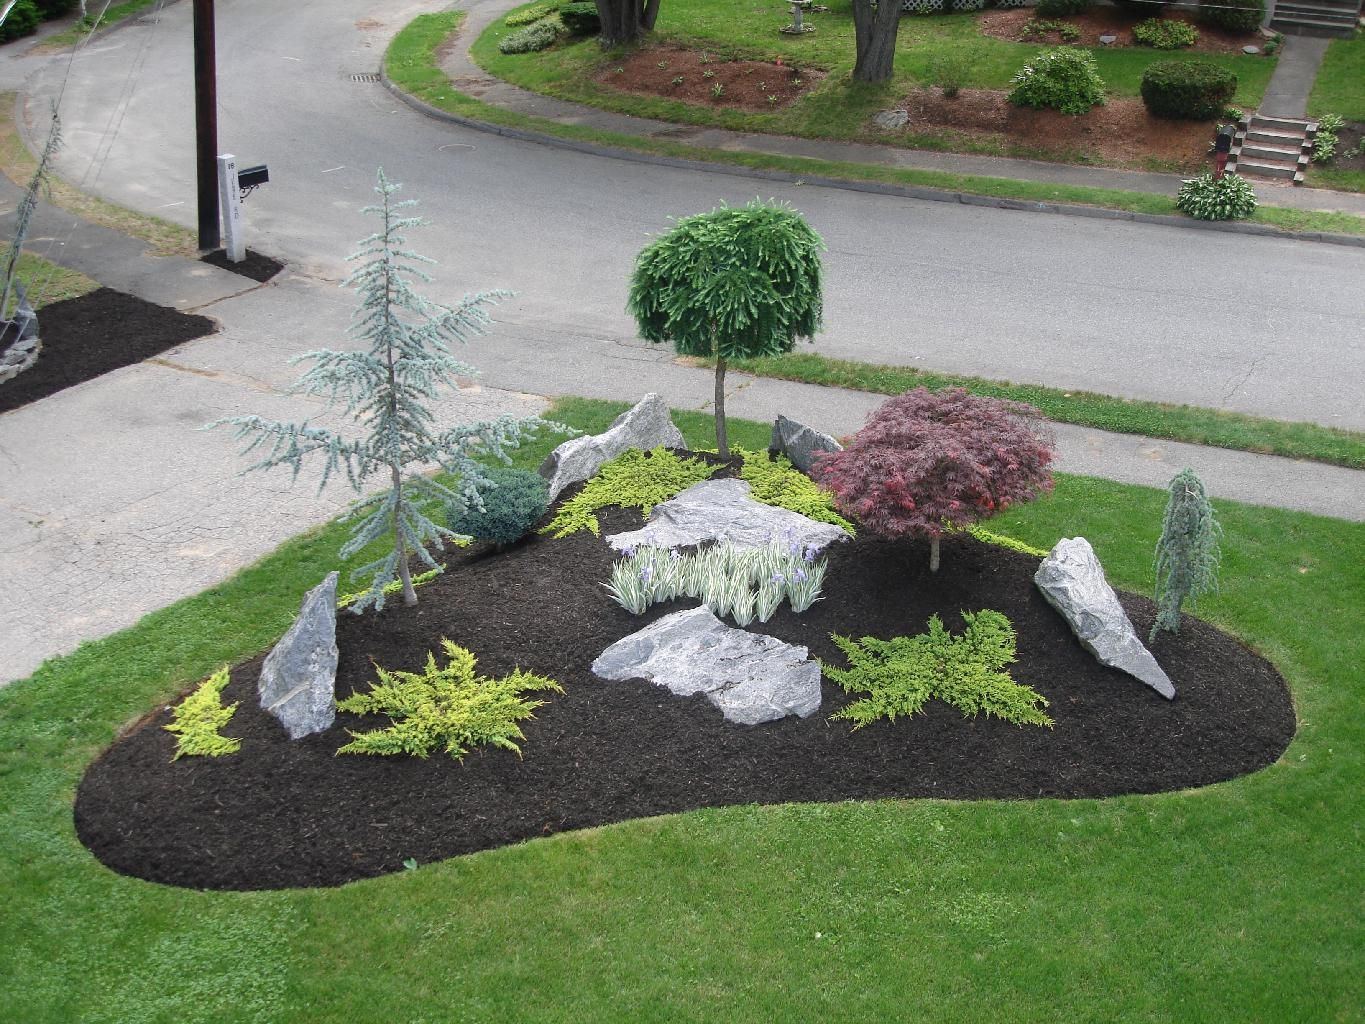 Simple landscape designs with rock beds google search for Simple rock garden designs